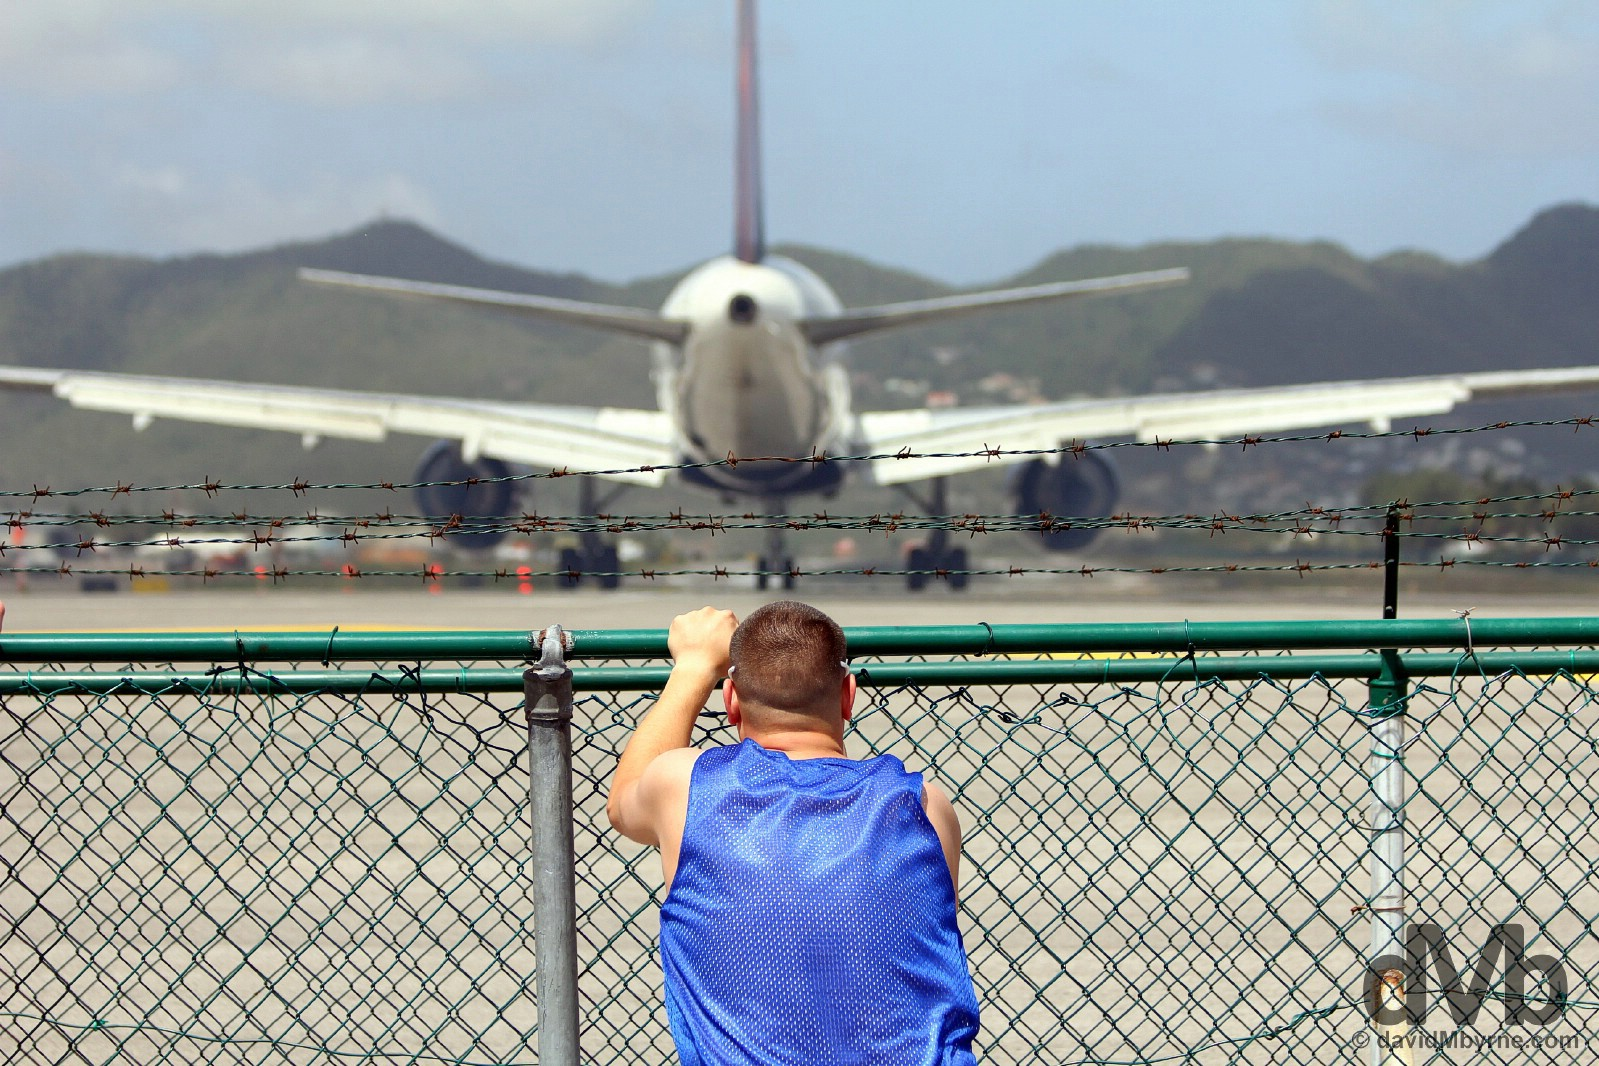 Riding The Fence. Maho Bay, Sint Maarten, Lesser Antilles. June 8, 2015.